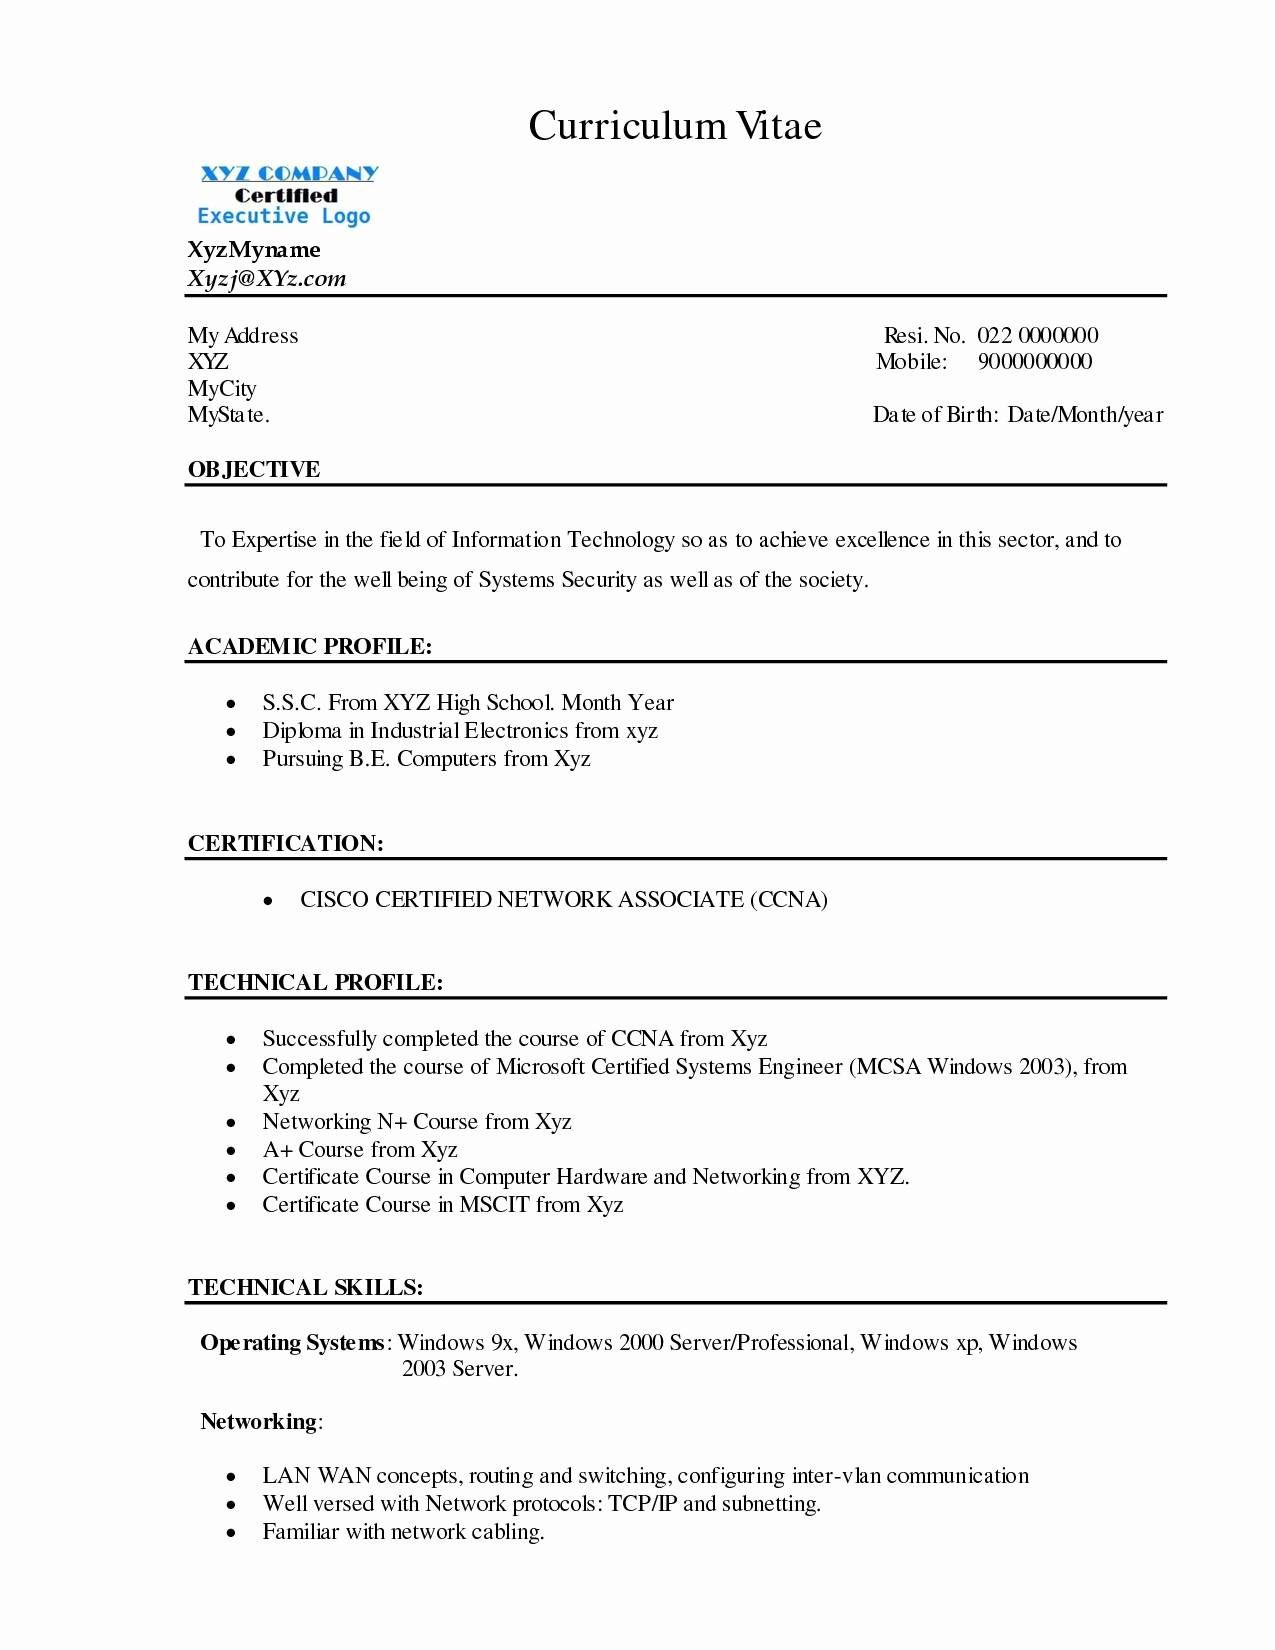 Aba Therapist Resume Sample New Amazing Therapist Cover Letter Aba Therapist Cover Letter Eviosoft Informative Essay Dating Dating Humor Quotes